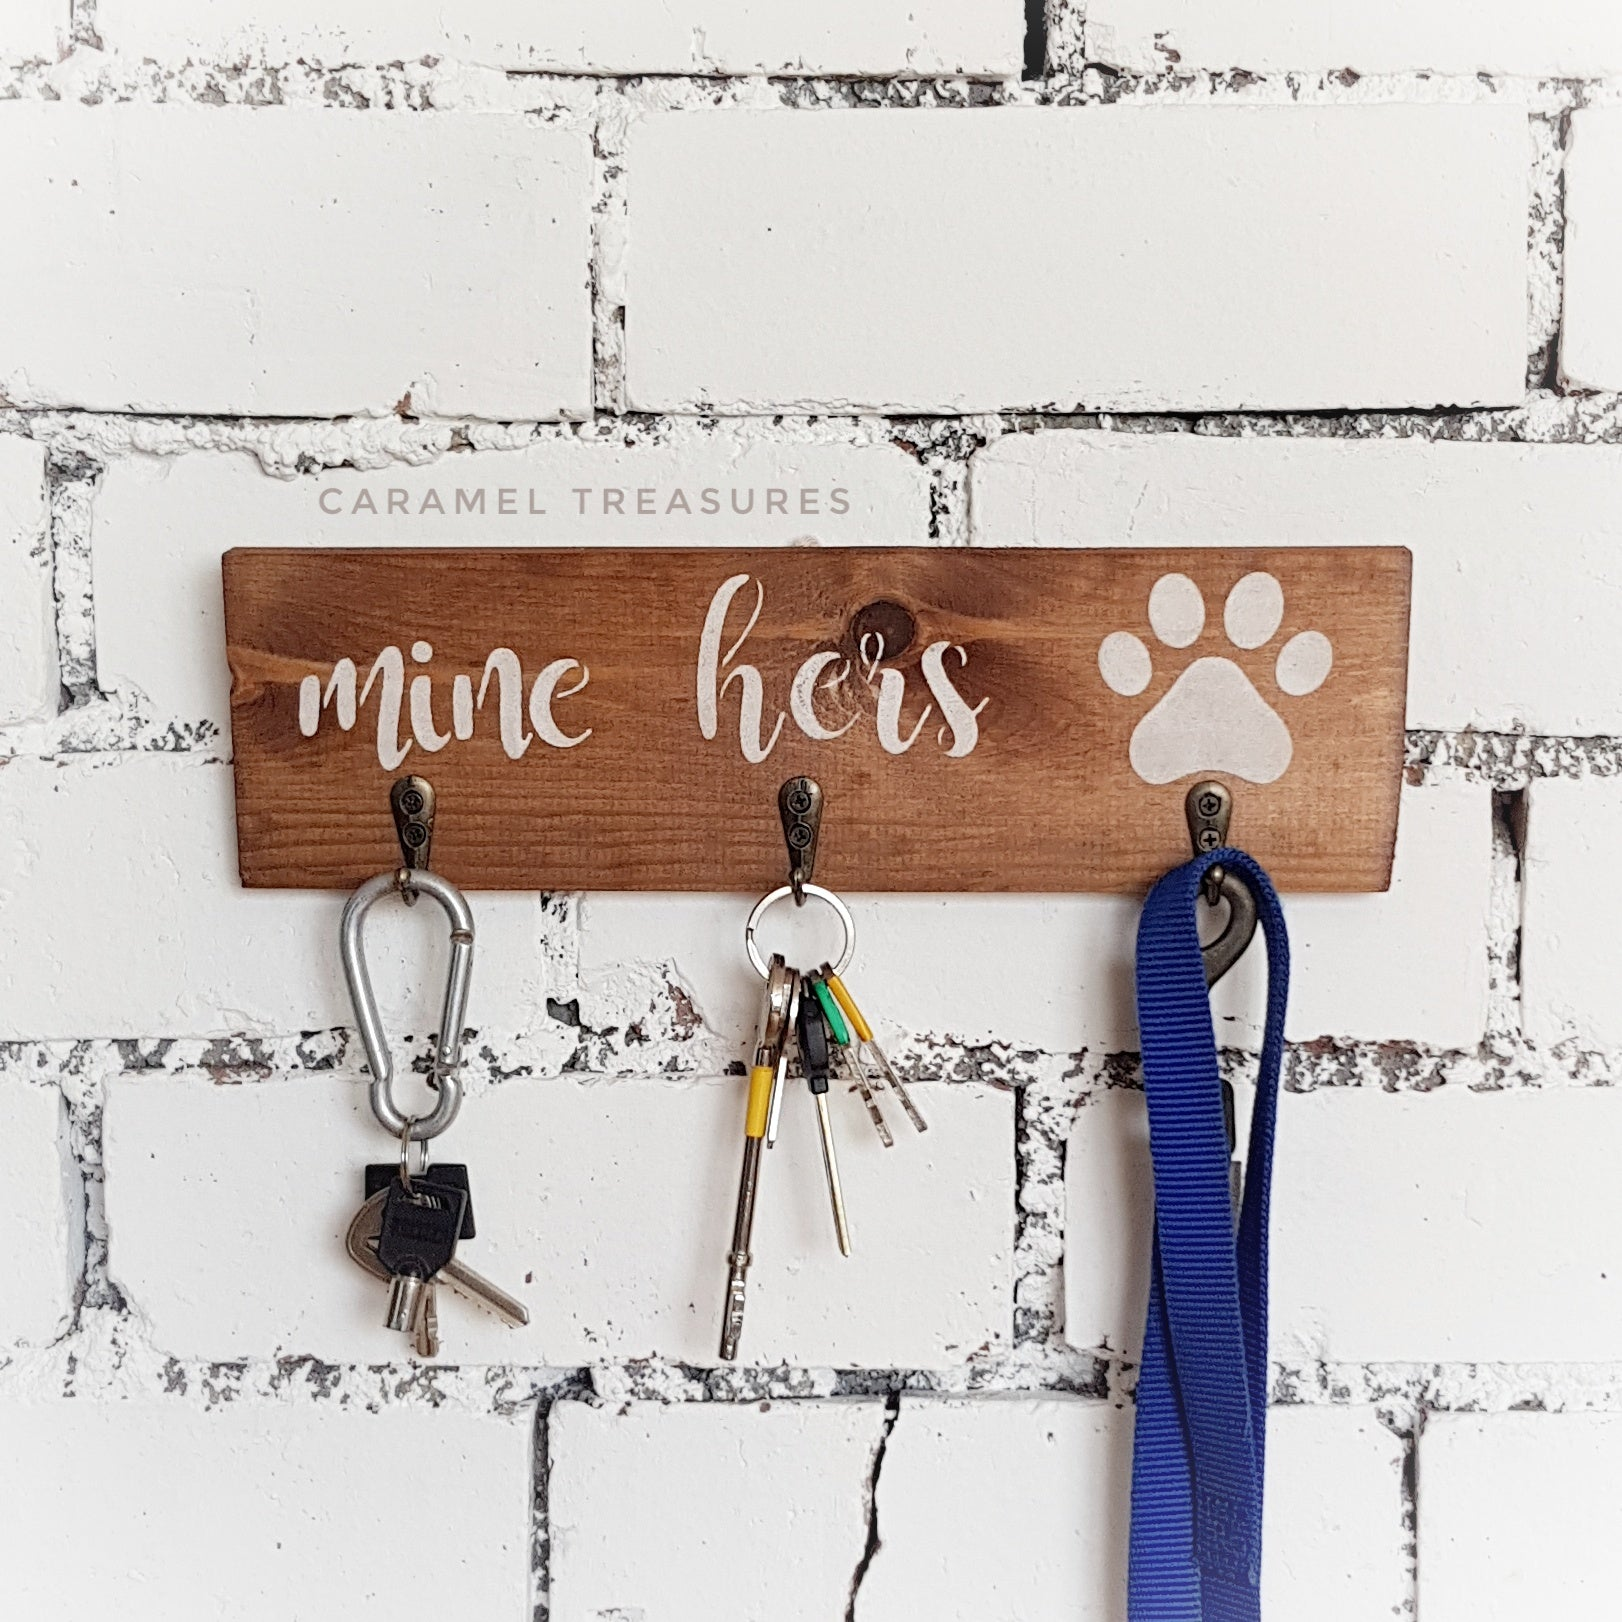 Rustic walk key and lead holder saying mine his or mine hers - Caramel Treasures